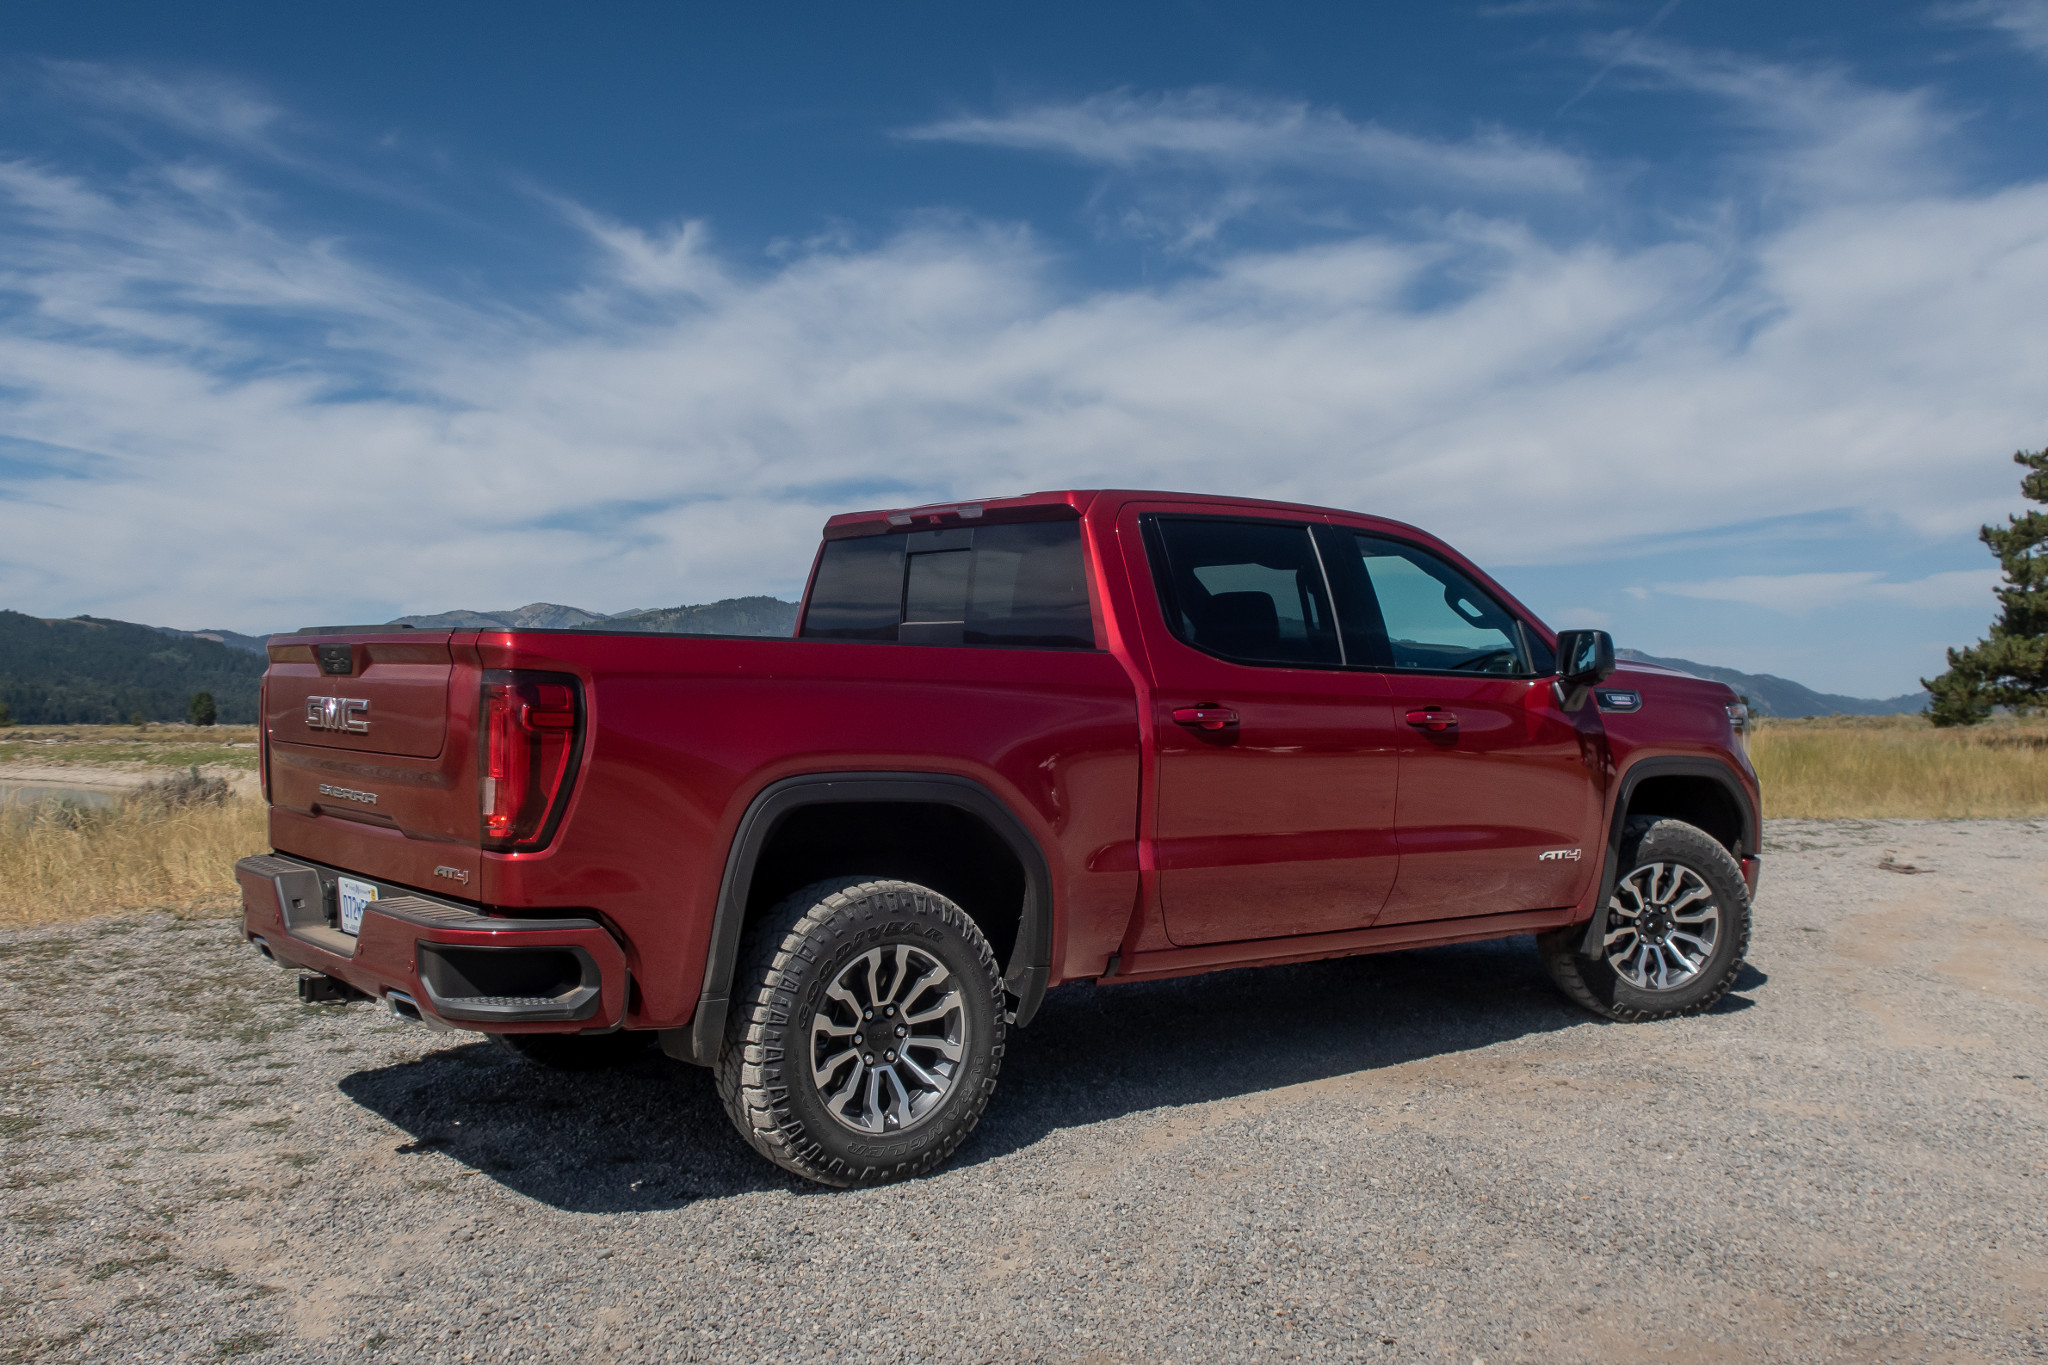 All the Pickup Truck News: GMC Sierra 1500 Diesel MPG Tested, Tesla Cybertruck Vs. Ford F-150 and More